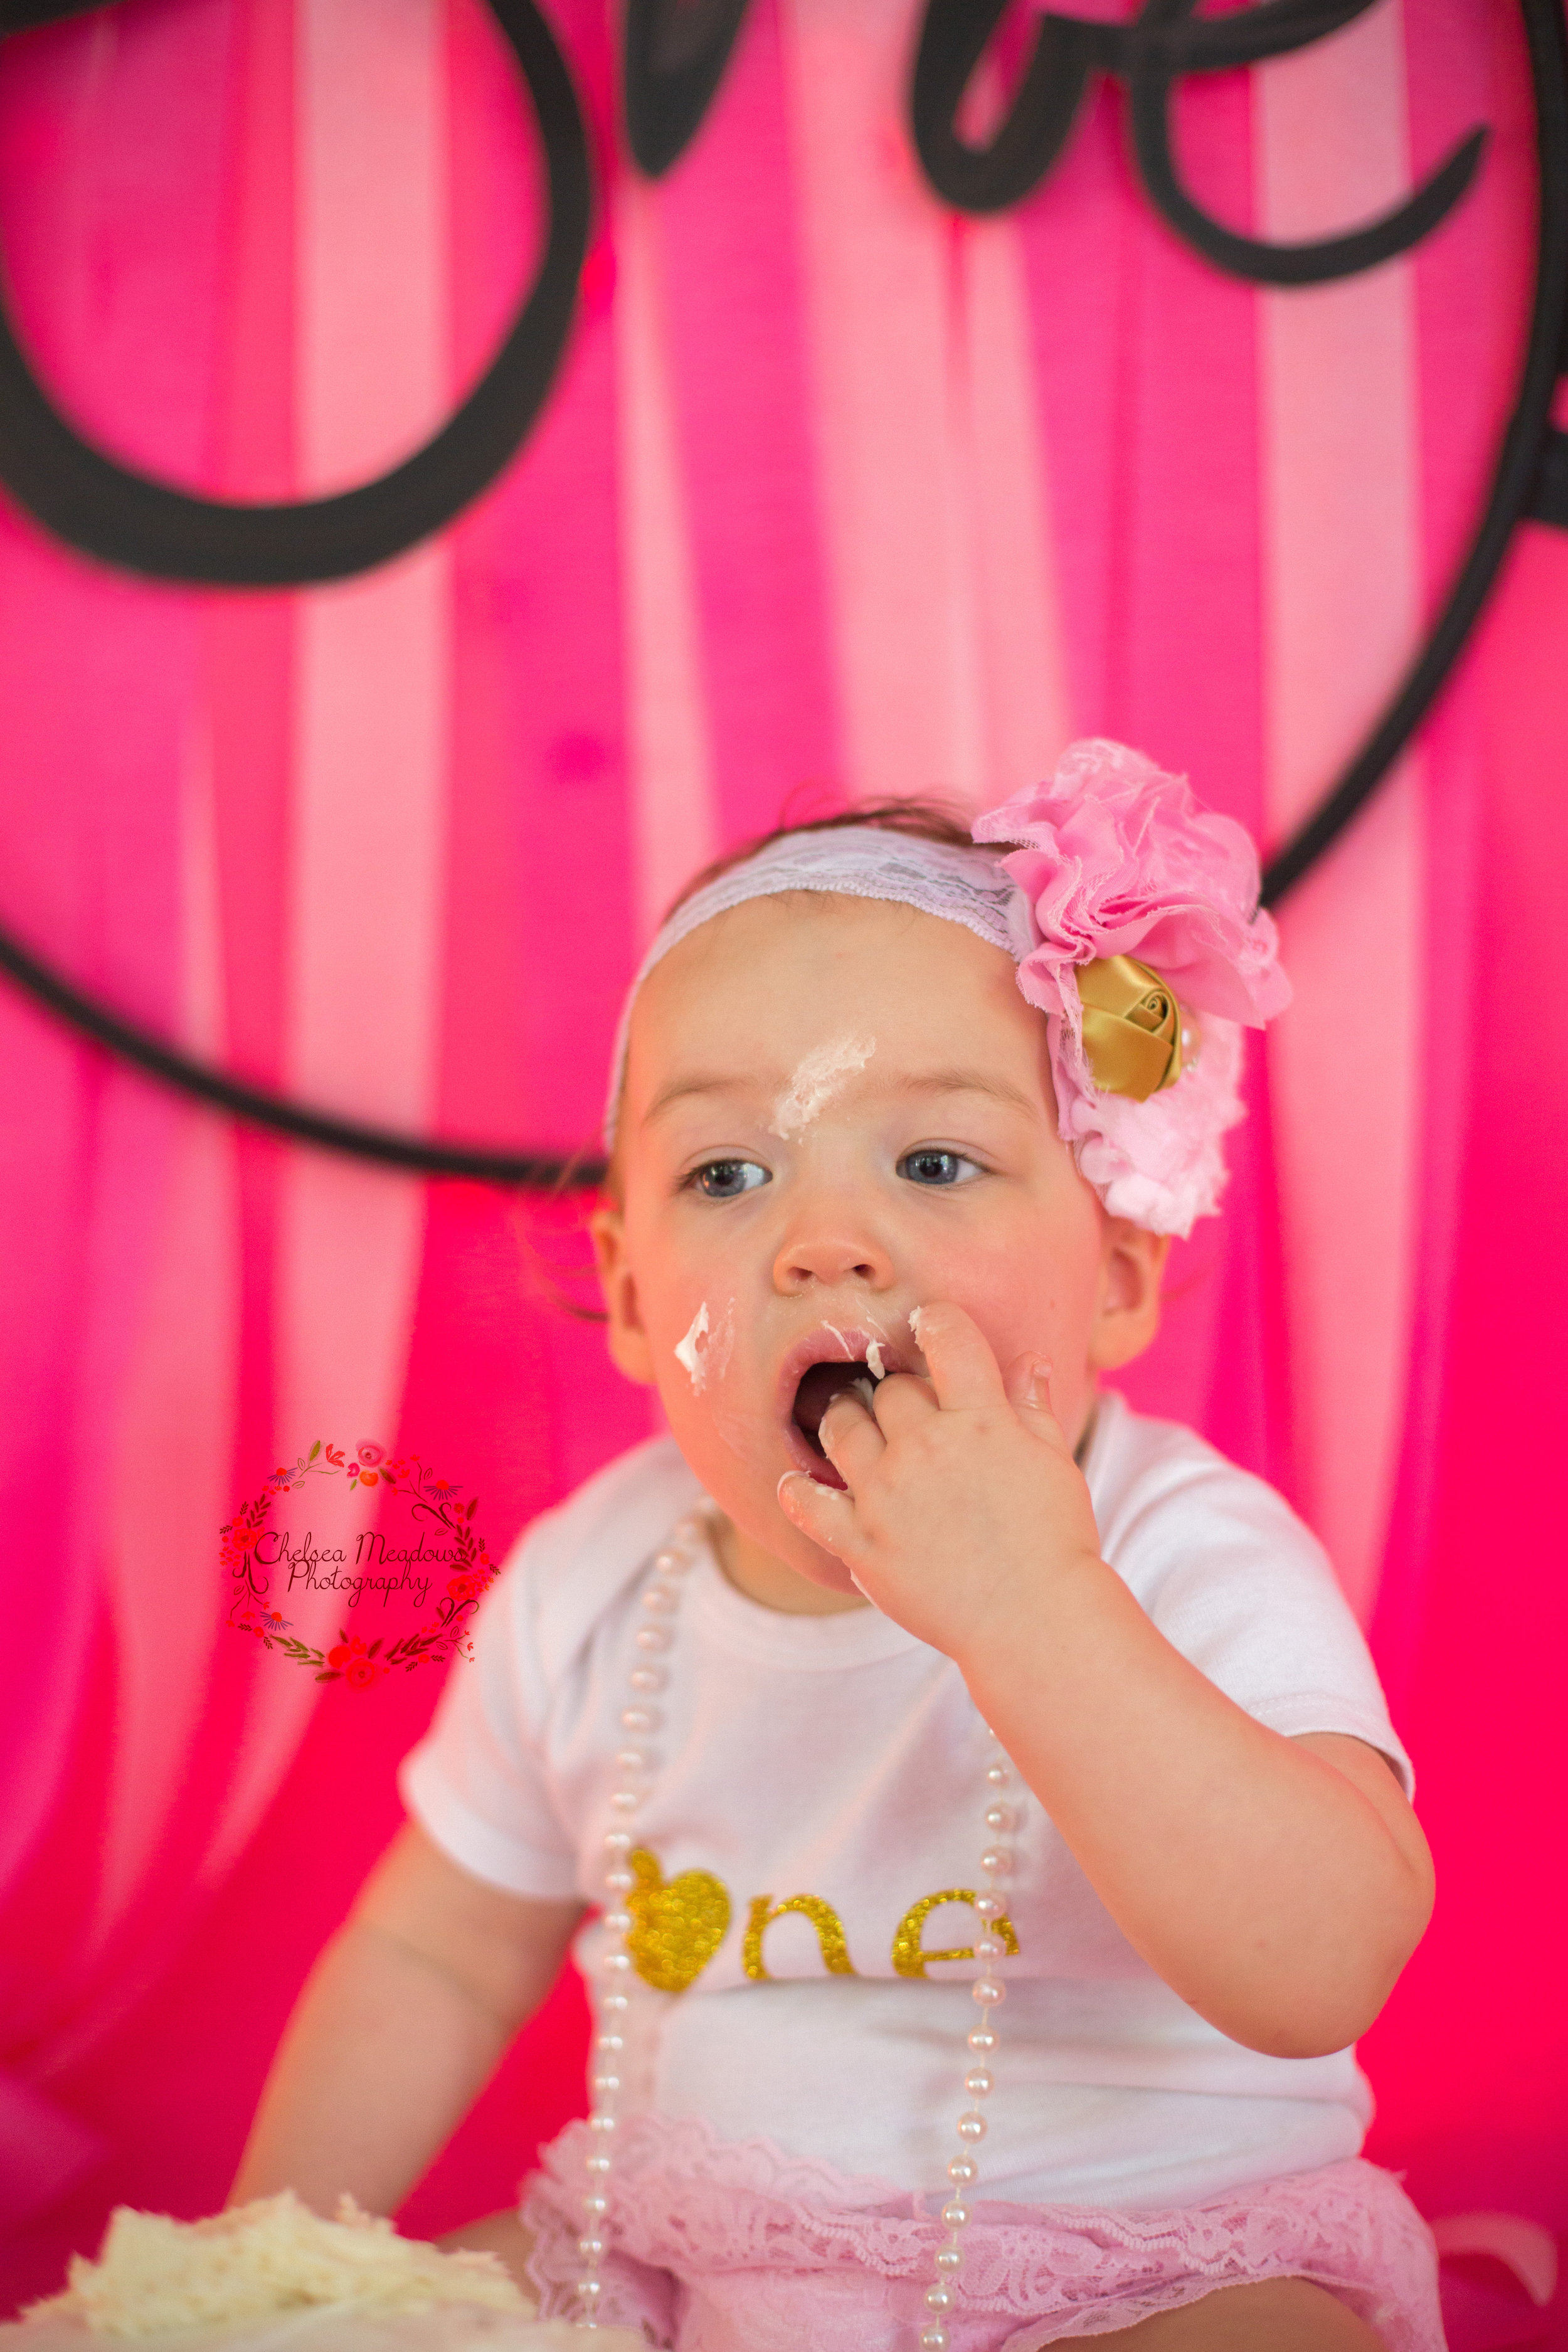 Phina First Birthday - Nashville Family Photographer - Chelsea Meadows Photography (87).jpg